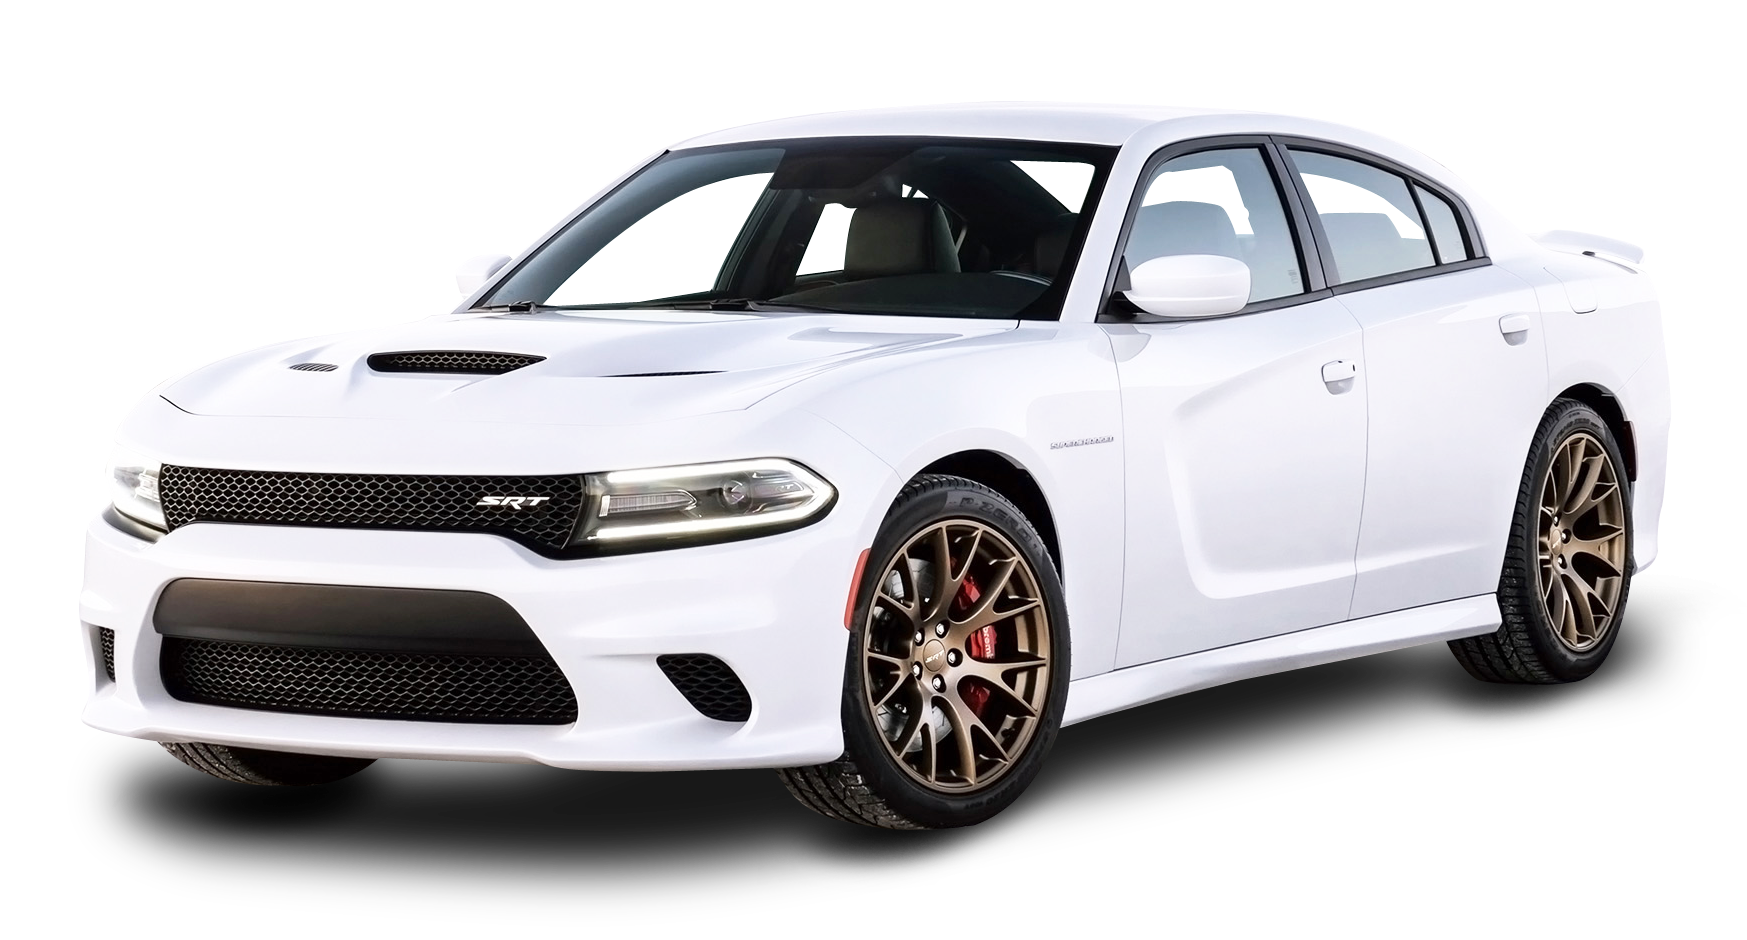 White Dodge Charger Car Png Image Charger Car Dodge Charger Car Images